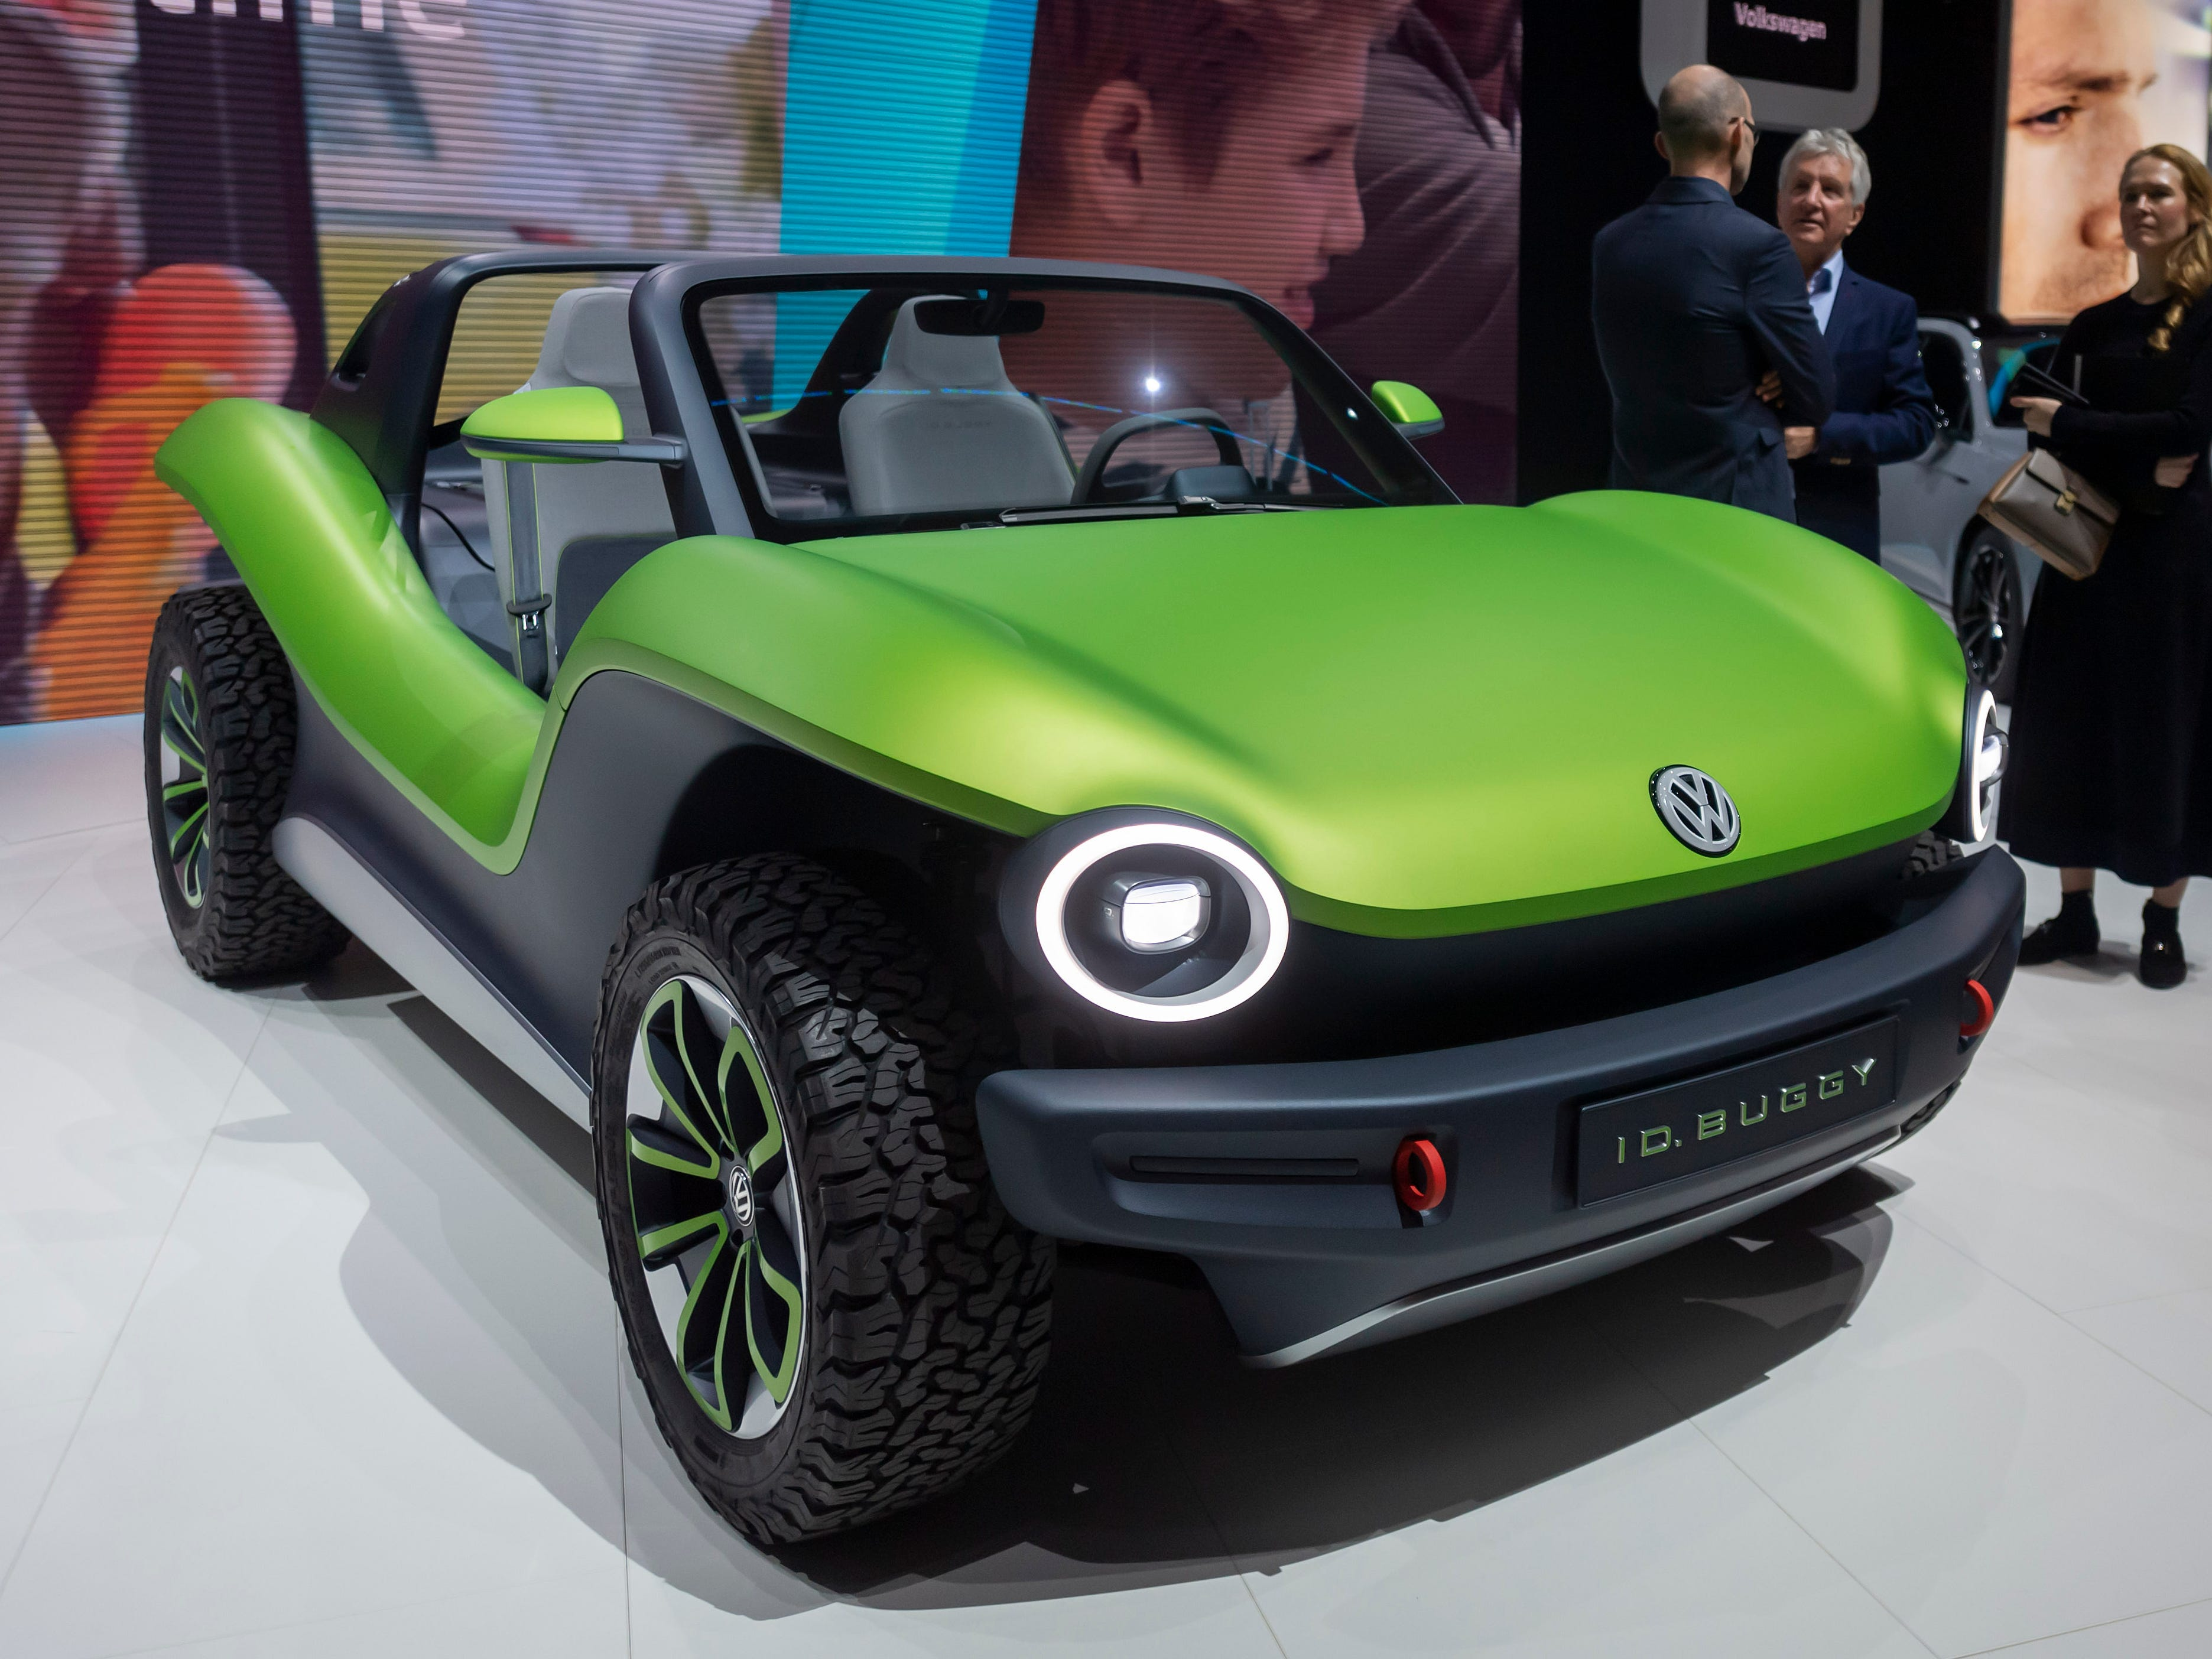 The Volkswagen ID Buggy has its time in the spotlight.